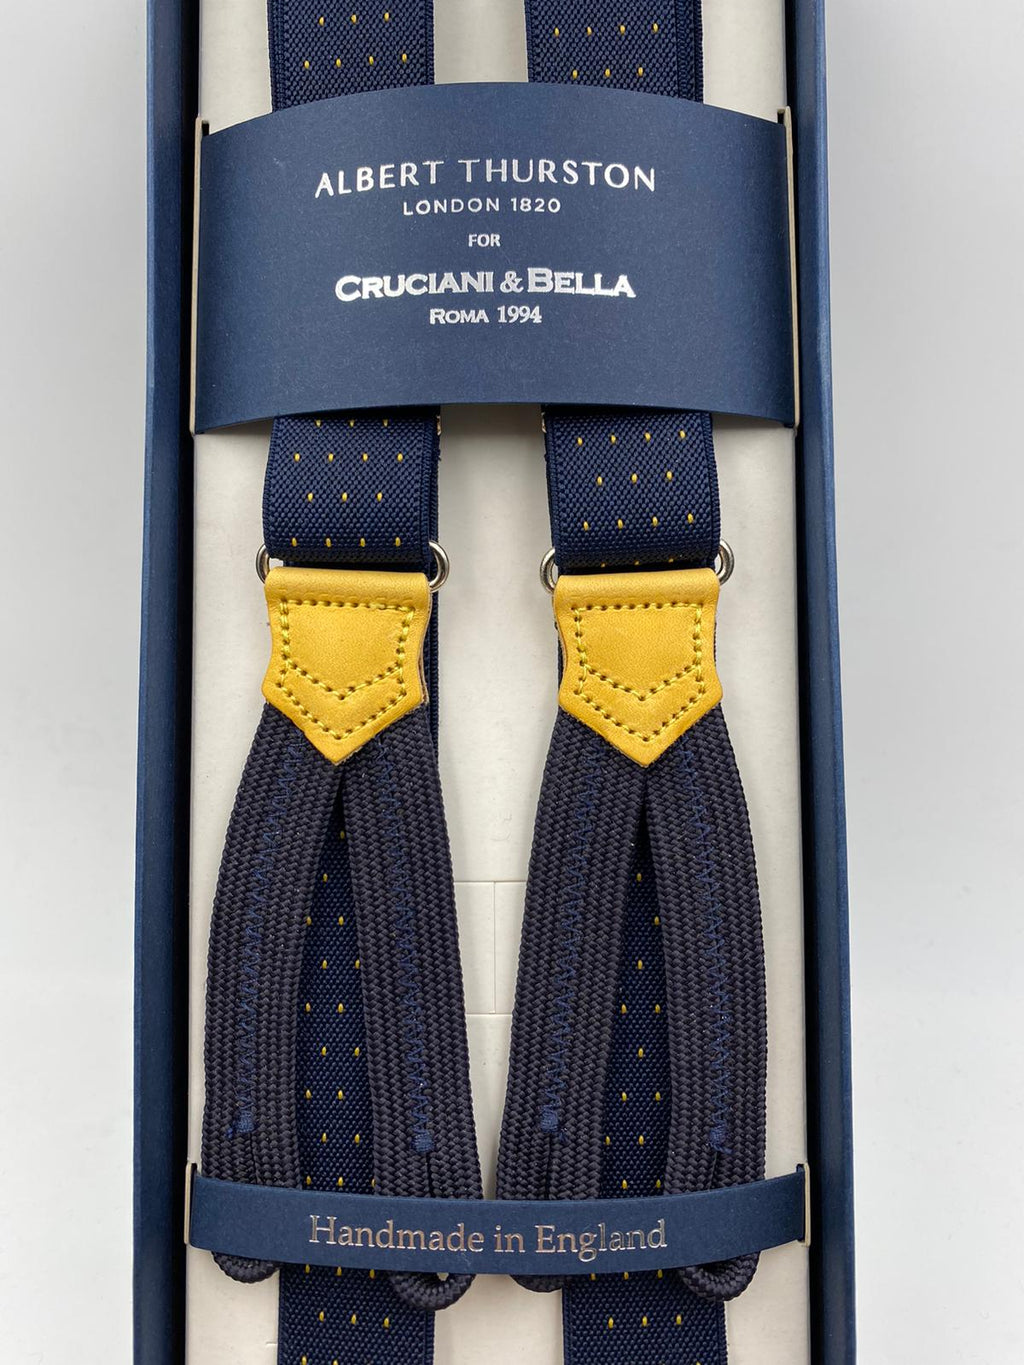 Albert Thurston for Cruciani & Bella Made in England Adjustable Sizing 25 mm elastic braces Blue and Yellow Dot Braid ends Y-Shaped Nickel Fittings Size: L #4899